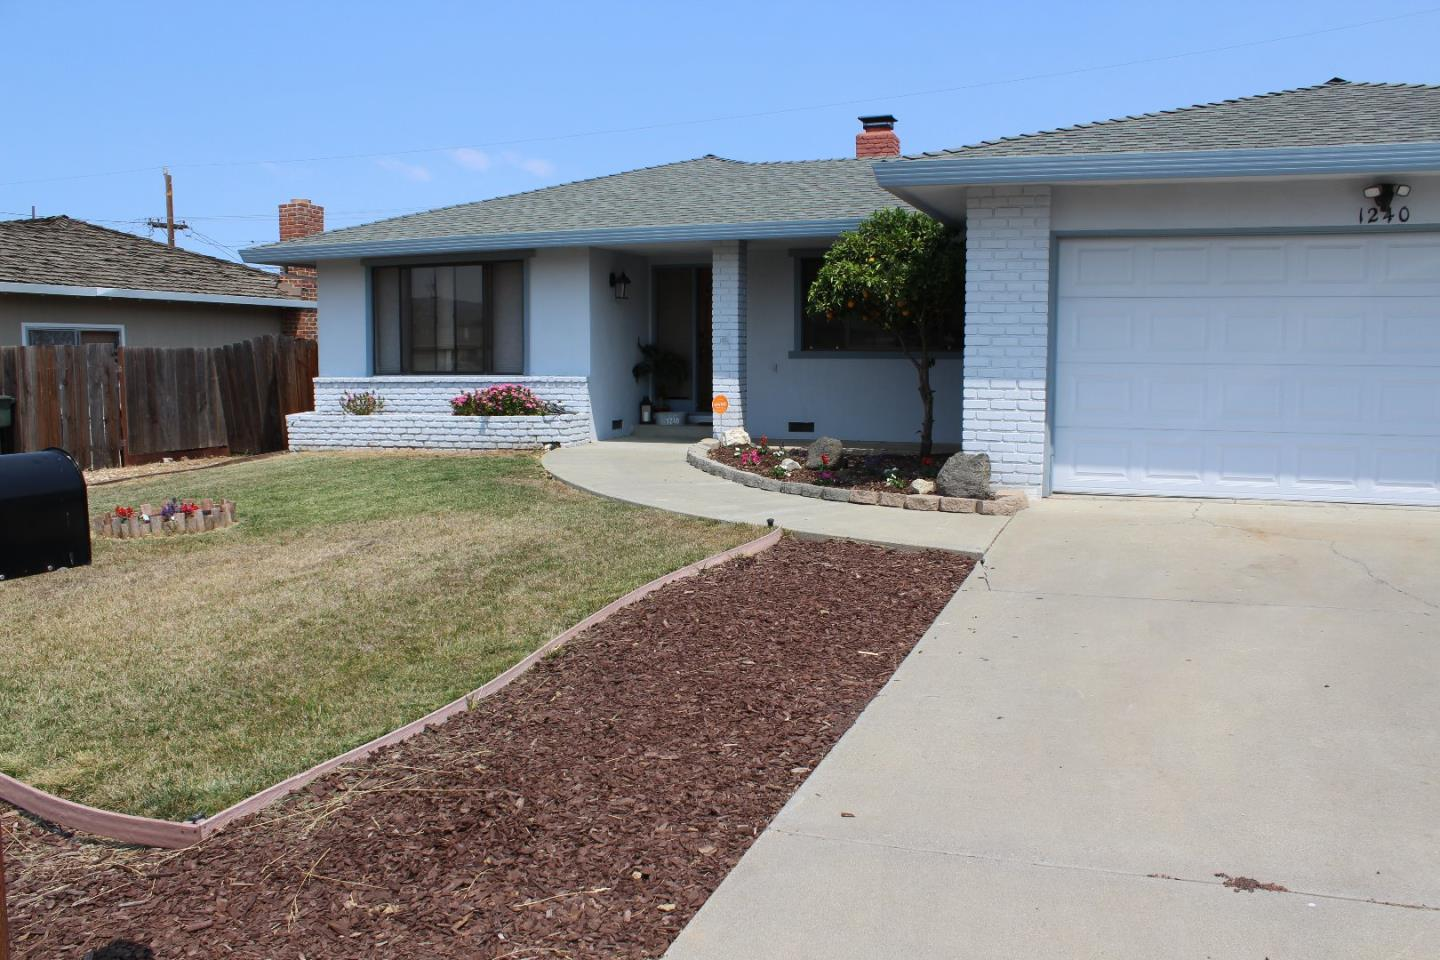 1240 Mesa Drive Hollister, CA 95023 - MLS #: ML81716474